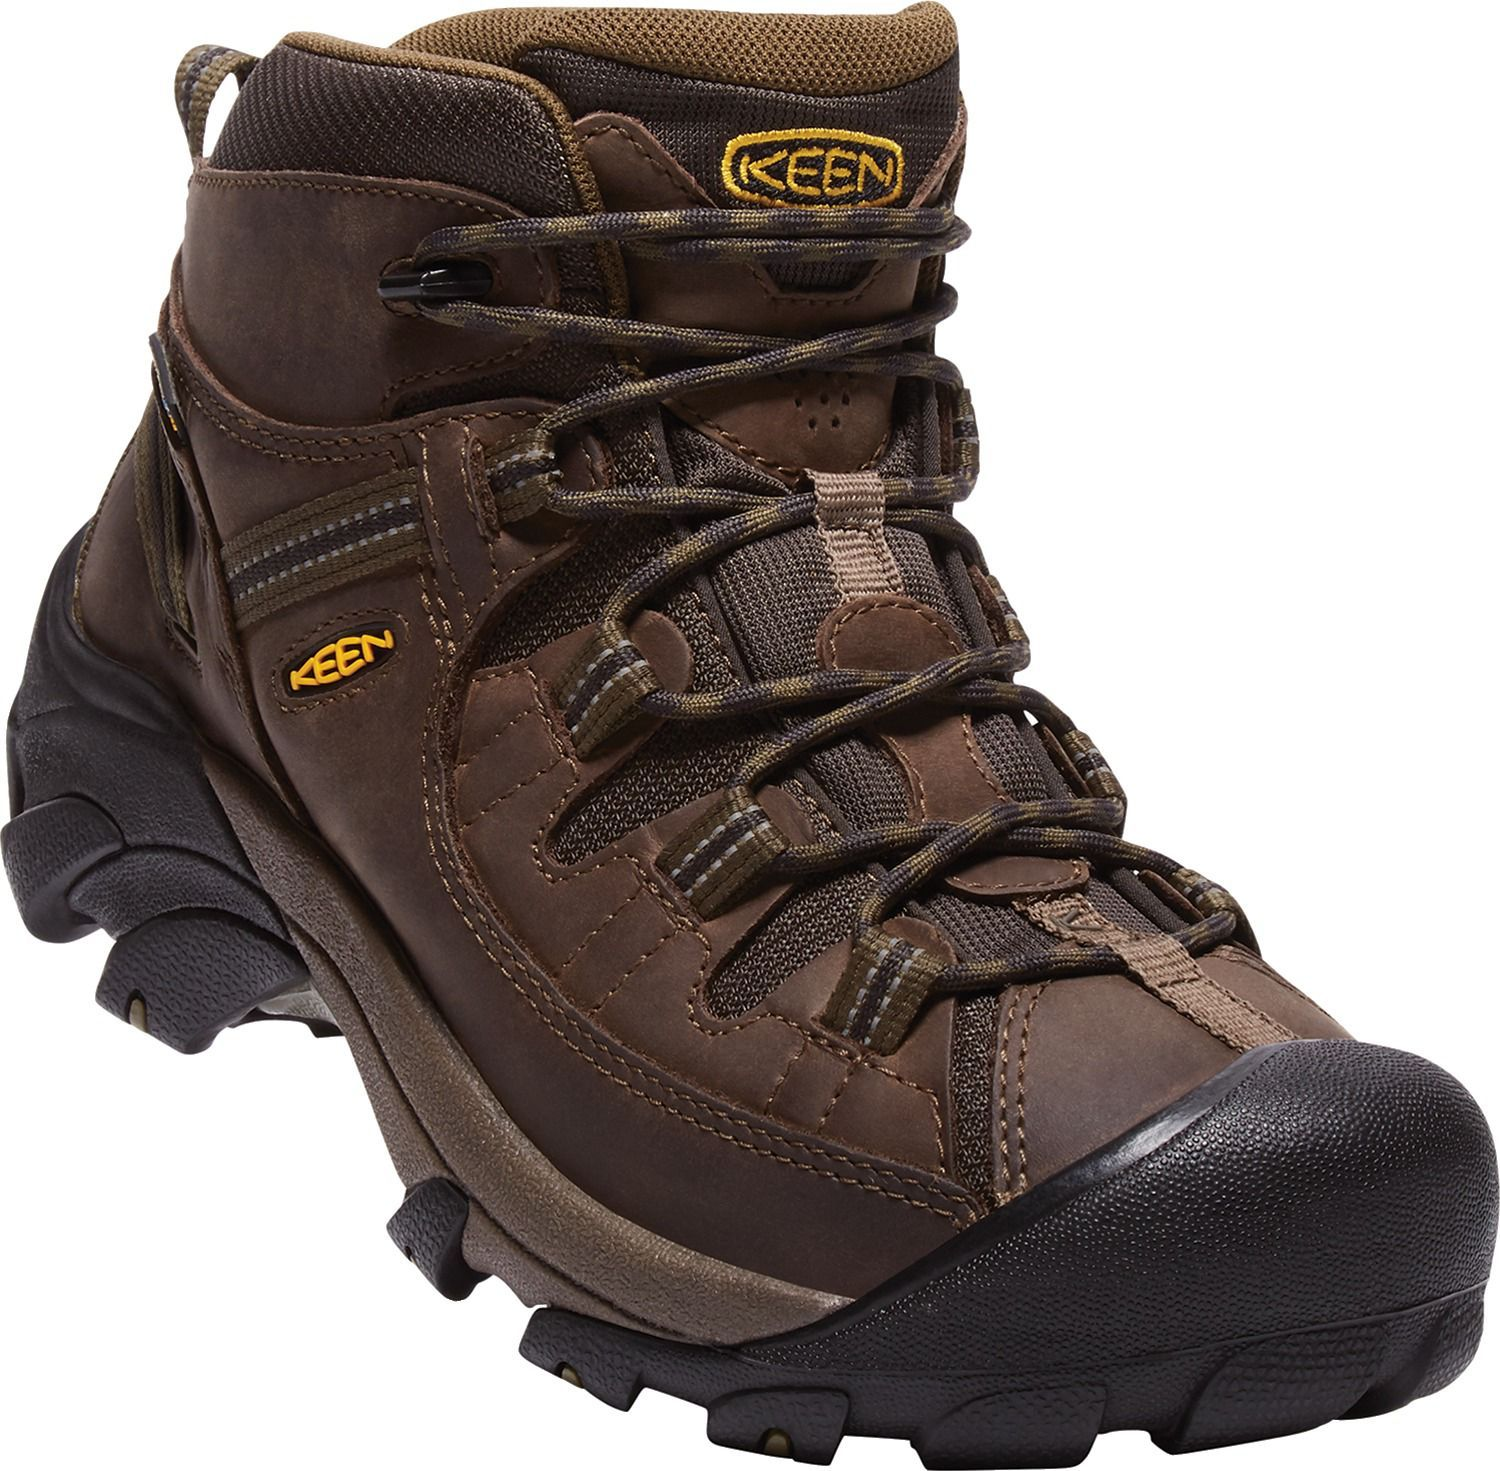 f6074ec1cd2 KEEN Men s Targhee II Mid Waterproof Hiking Boots in 2019